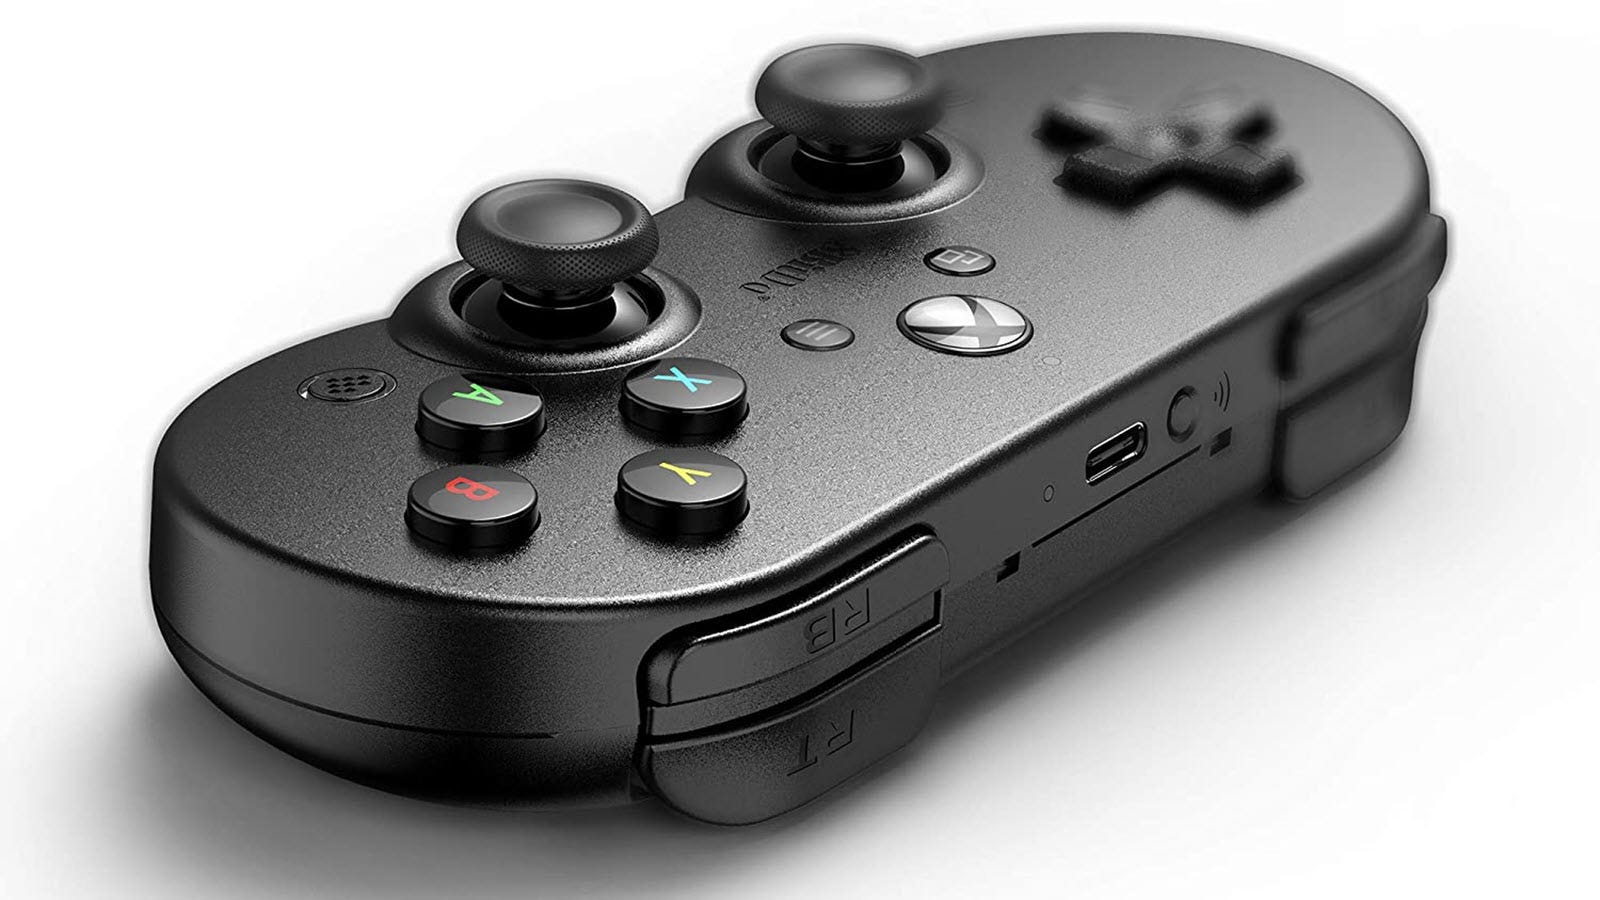 A closeup of the Sn30 Pro showing SNES controller like curves.